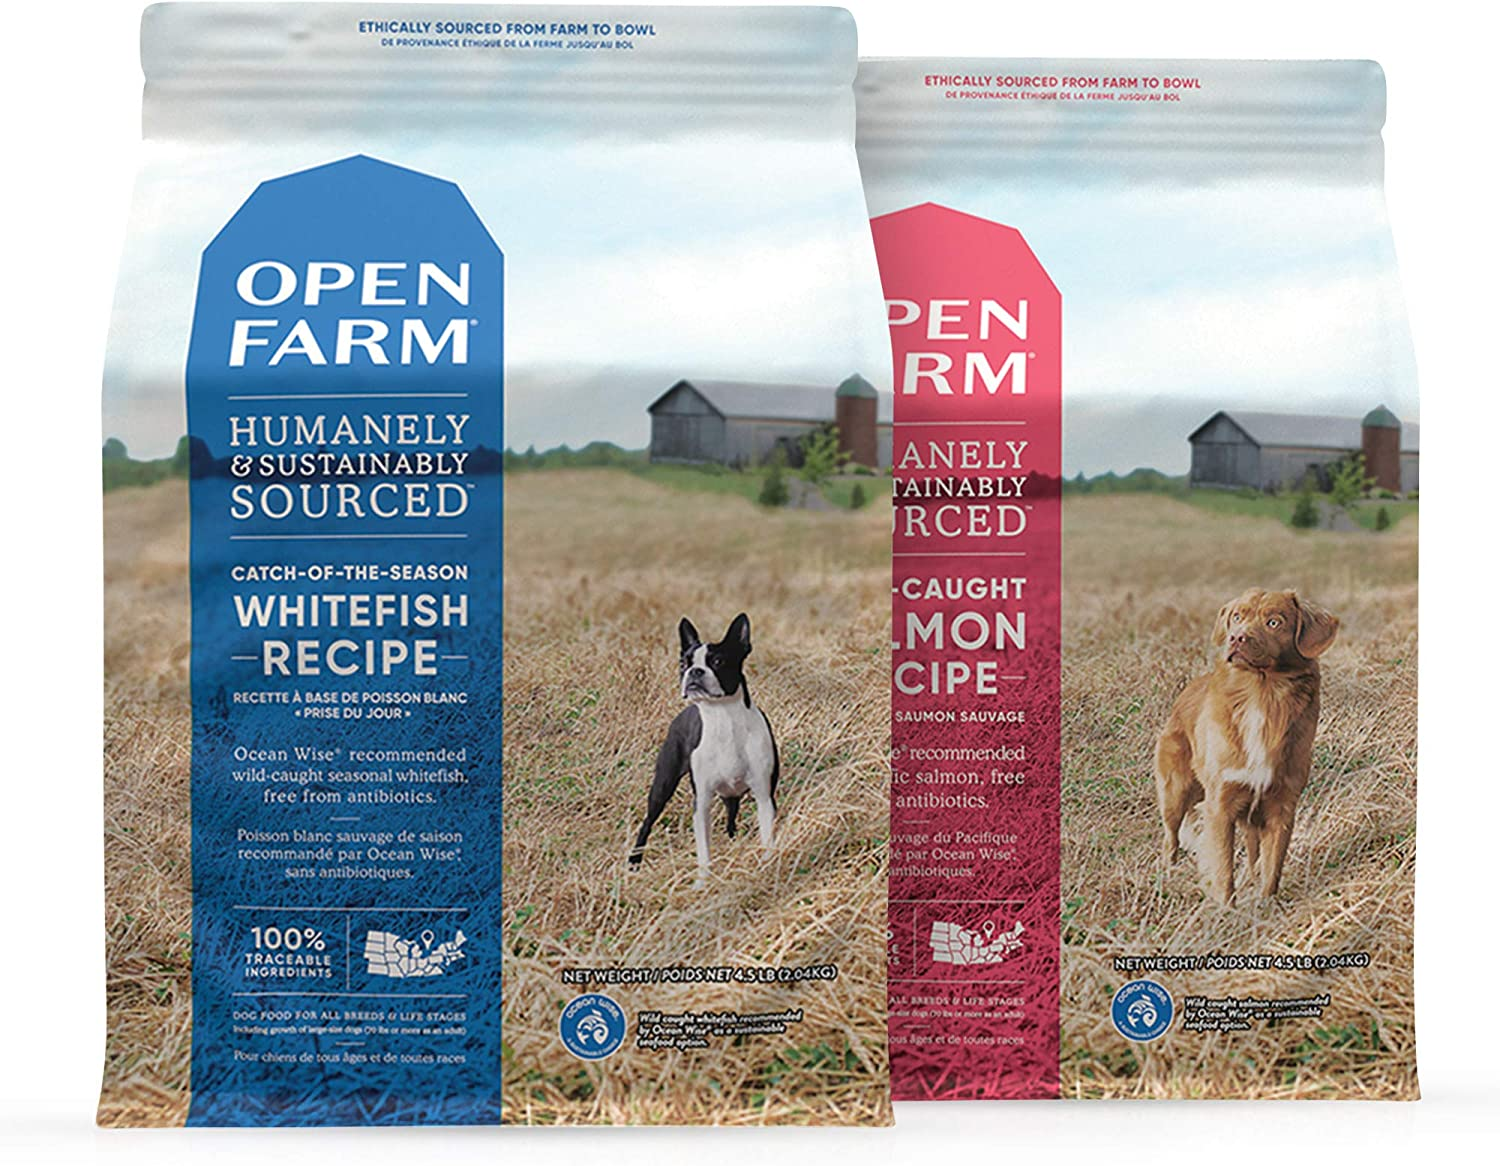 Open Farm Grain Free Dry Dog Food, Catch-of-The-Season Whitefish and Wild-Caught Salmon Bundle, Non-GMO Superfoods and No Artificial Flavors or Preservatives, 4.5 lbs